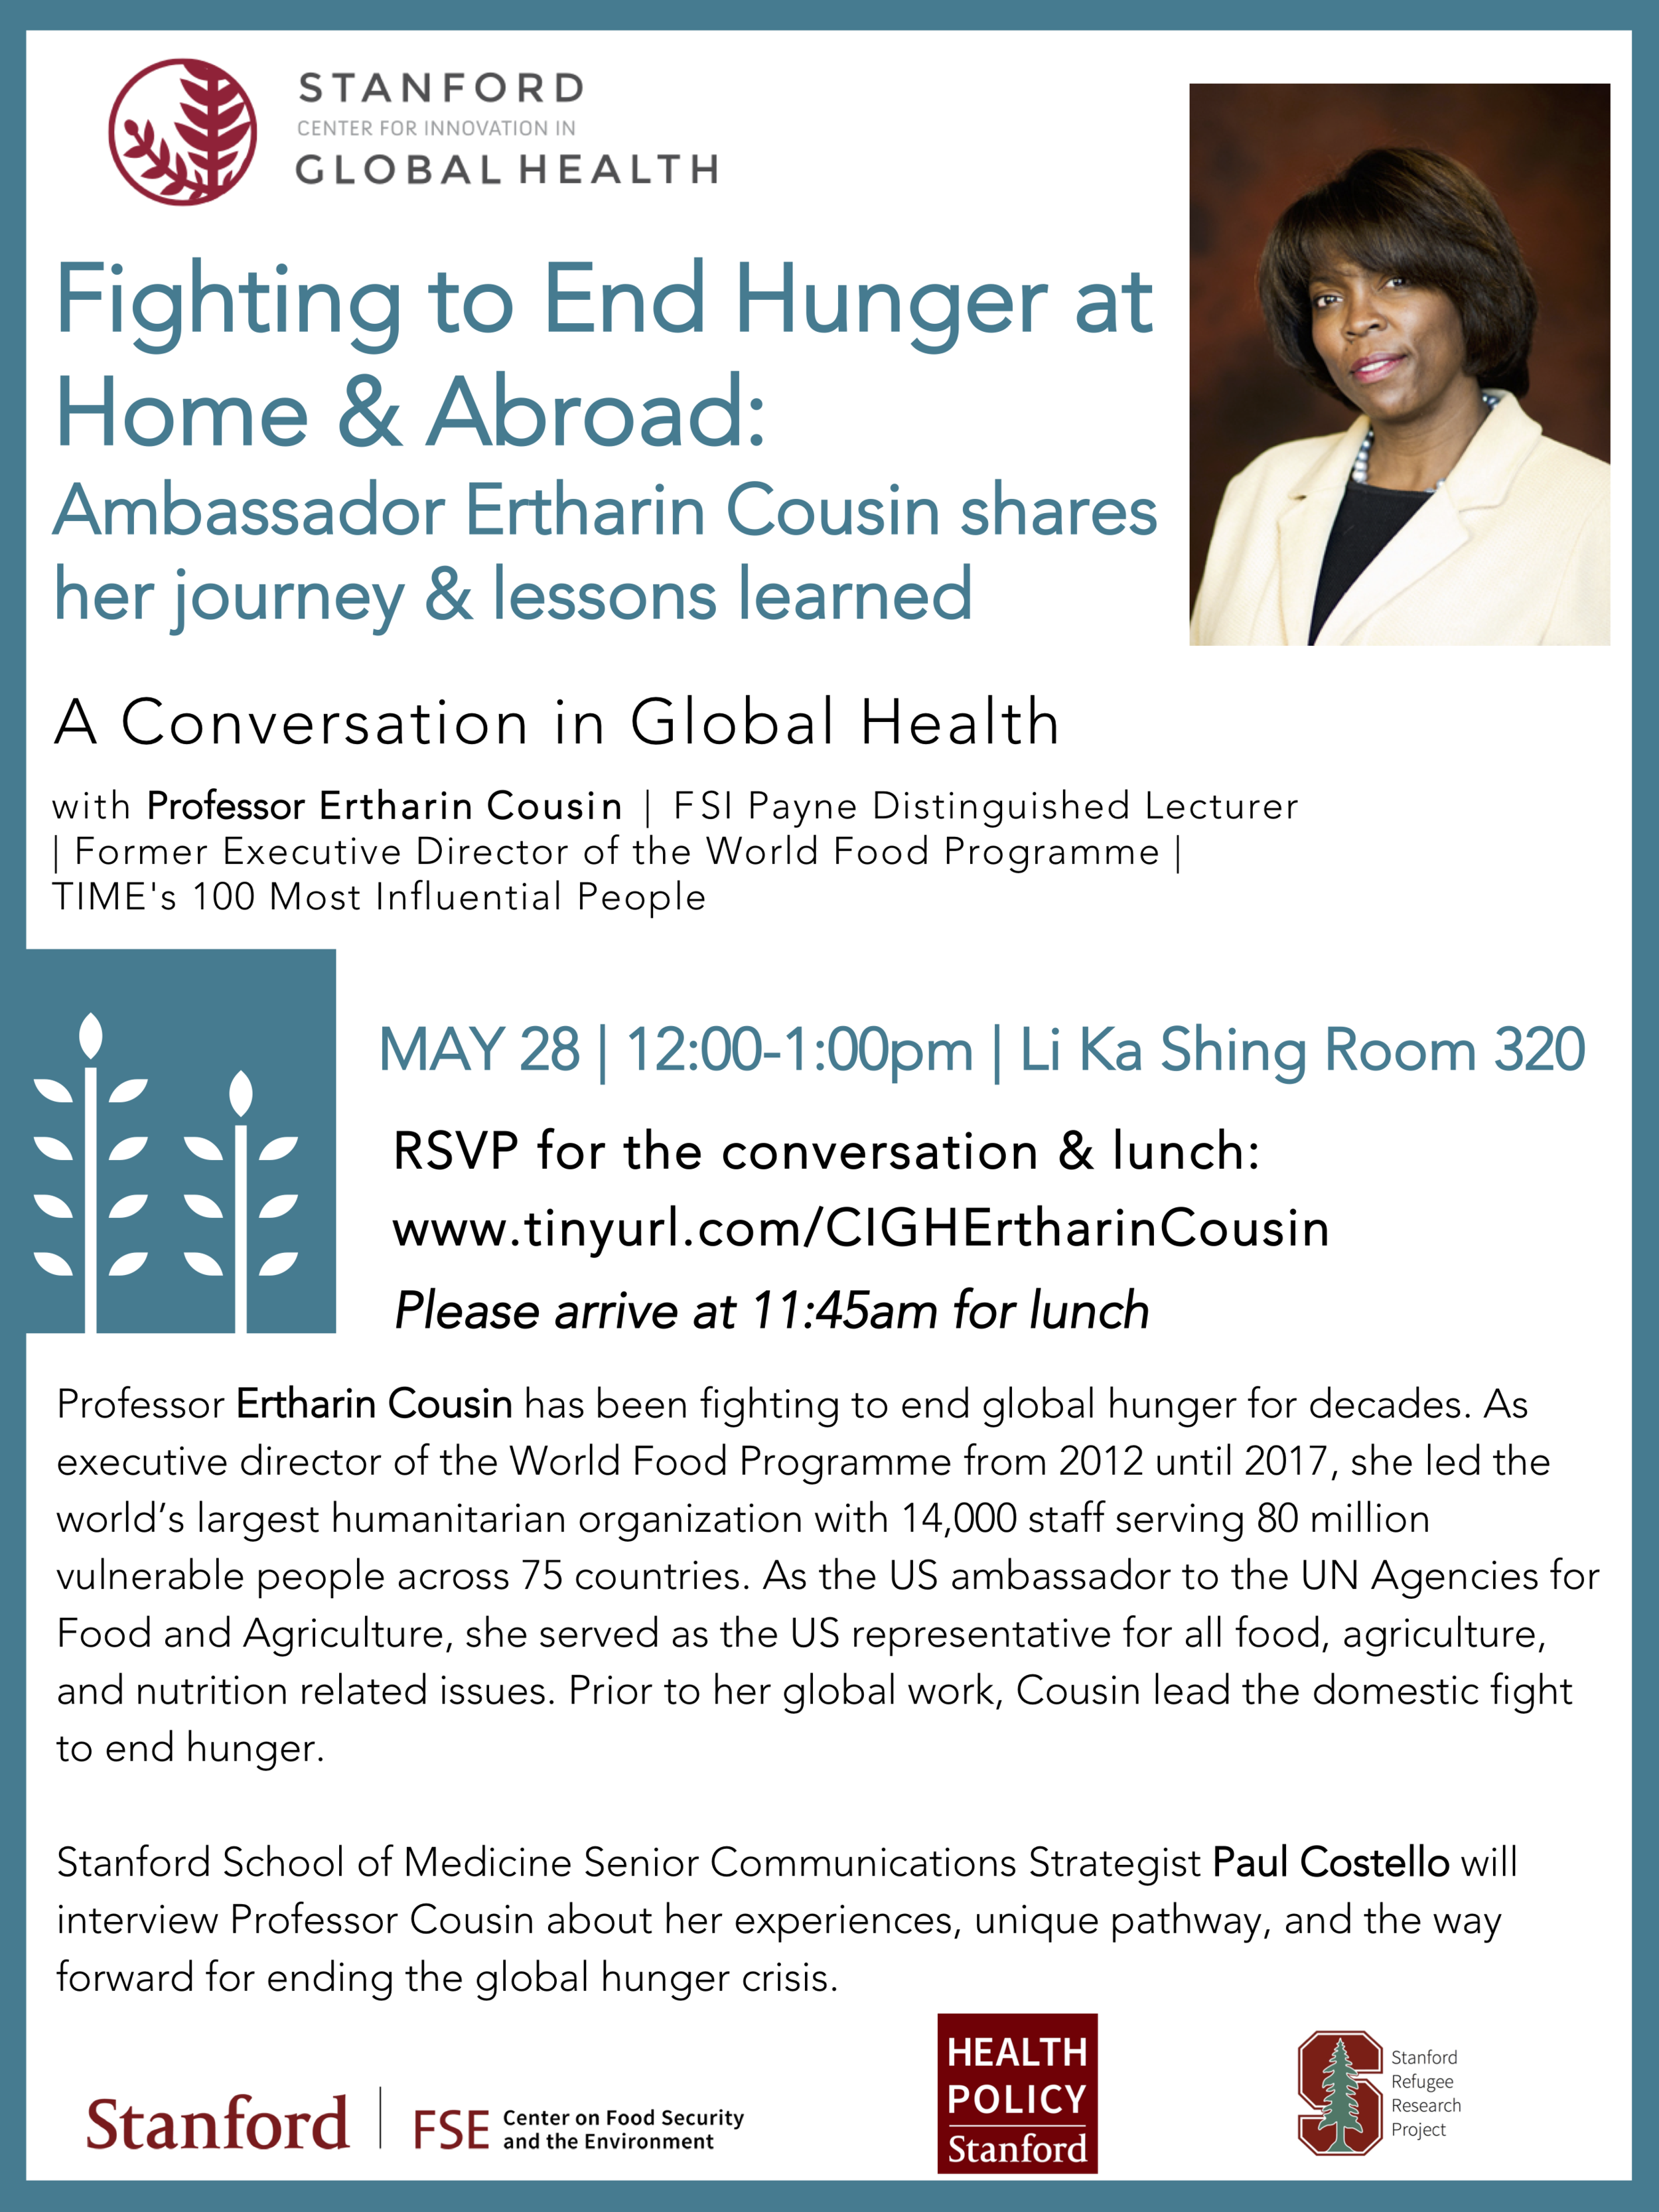 Fighting to End Hunger at Home and Abroad - May 28, 2019